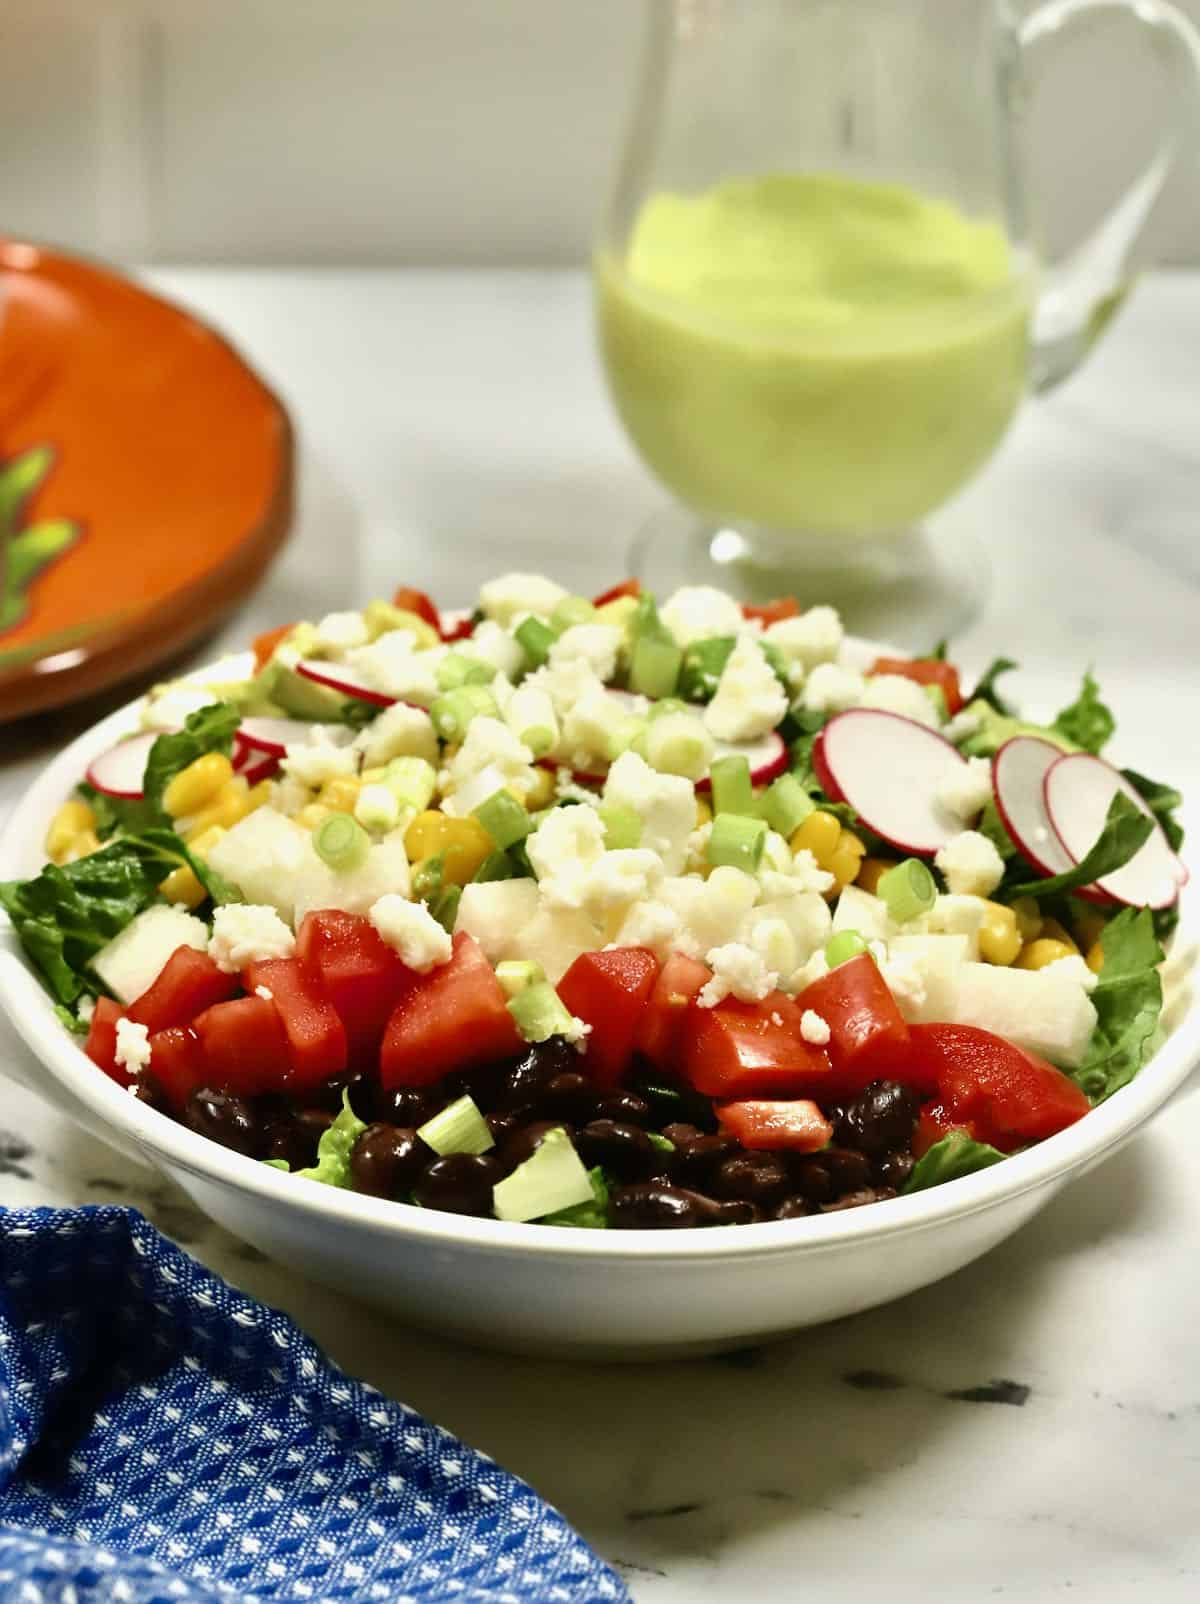 Mexican chopped salad in a white bowl.